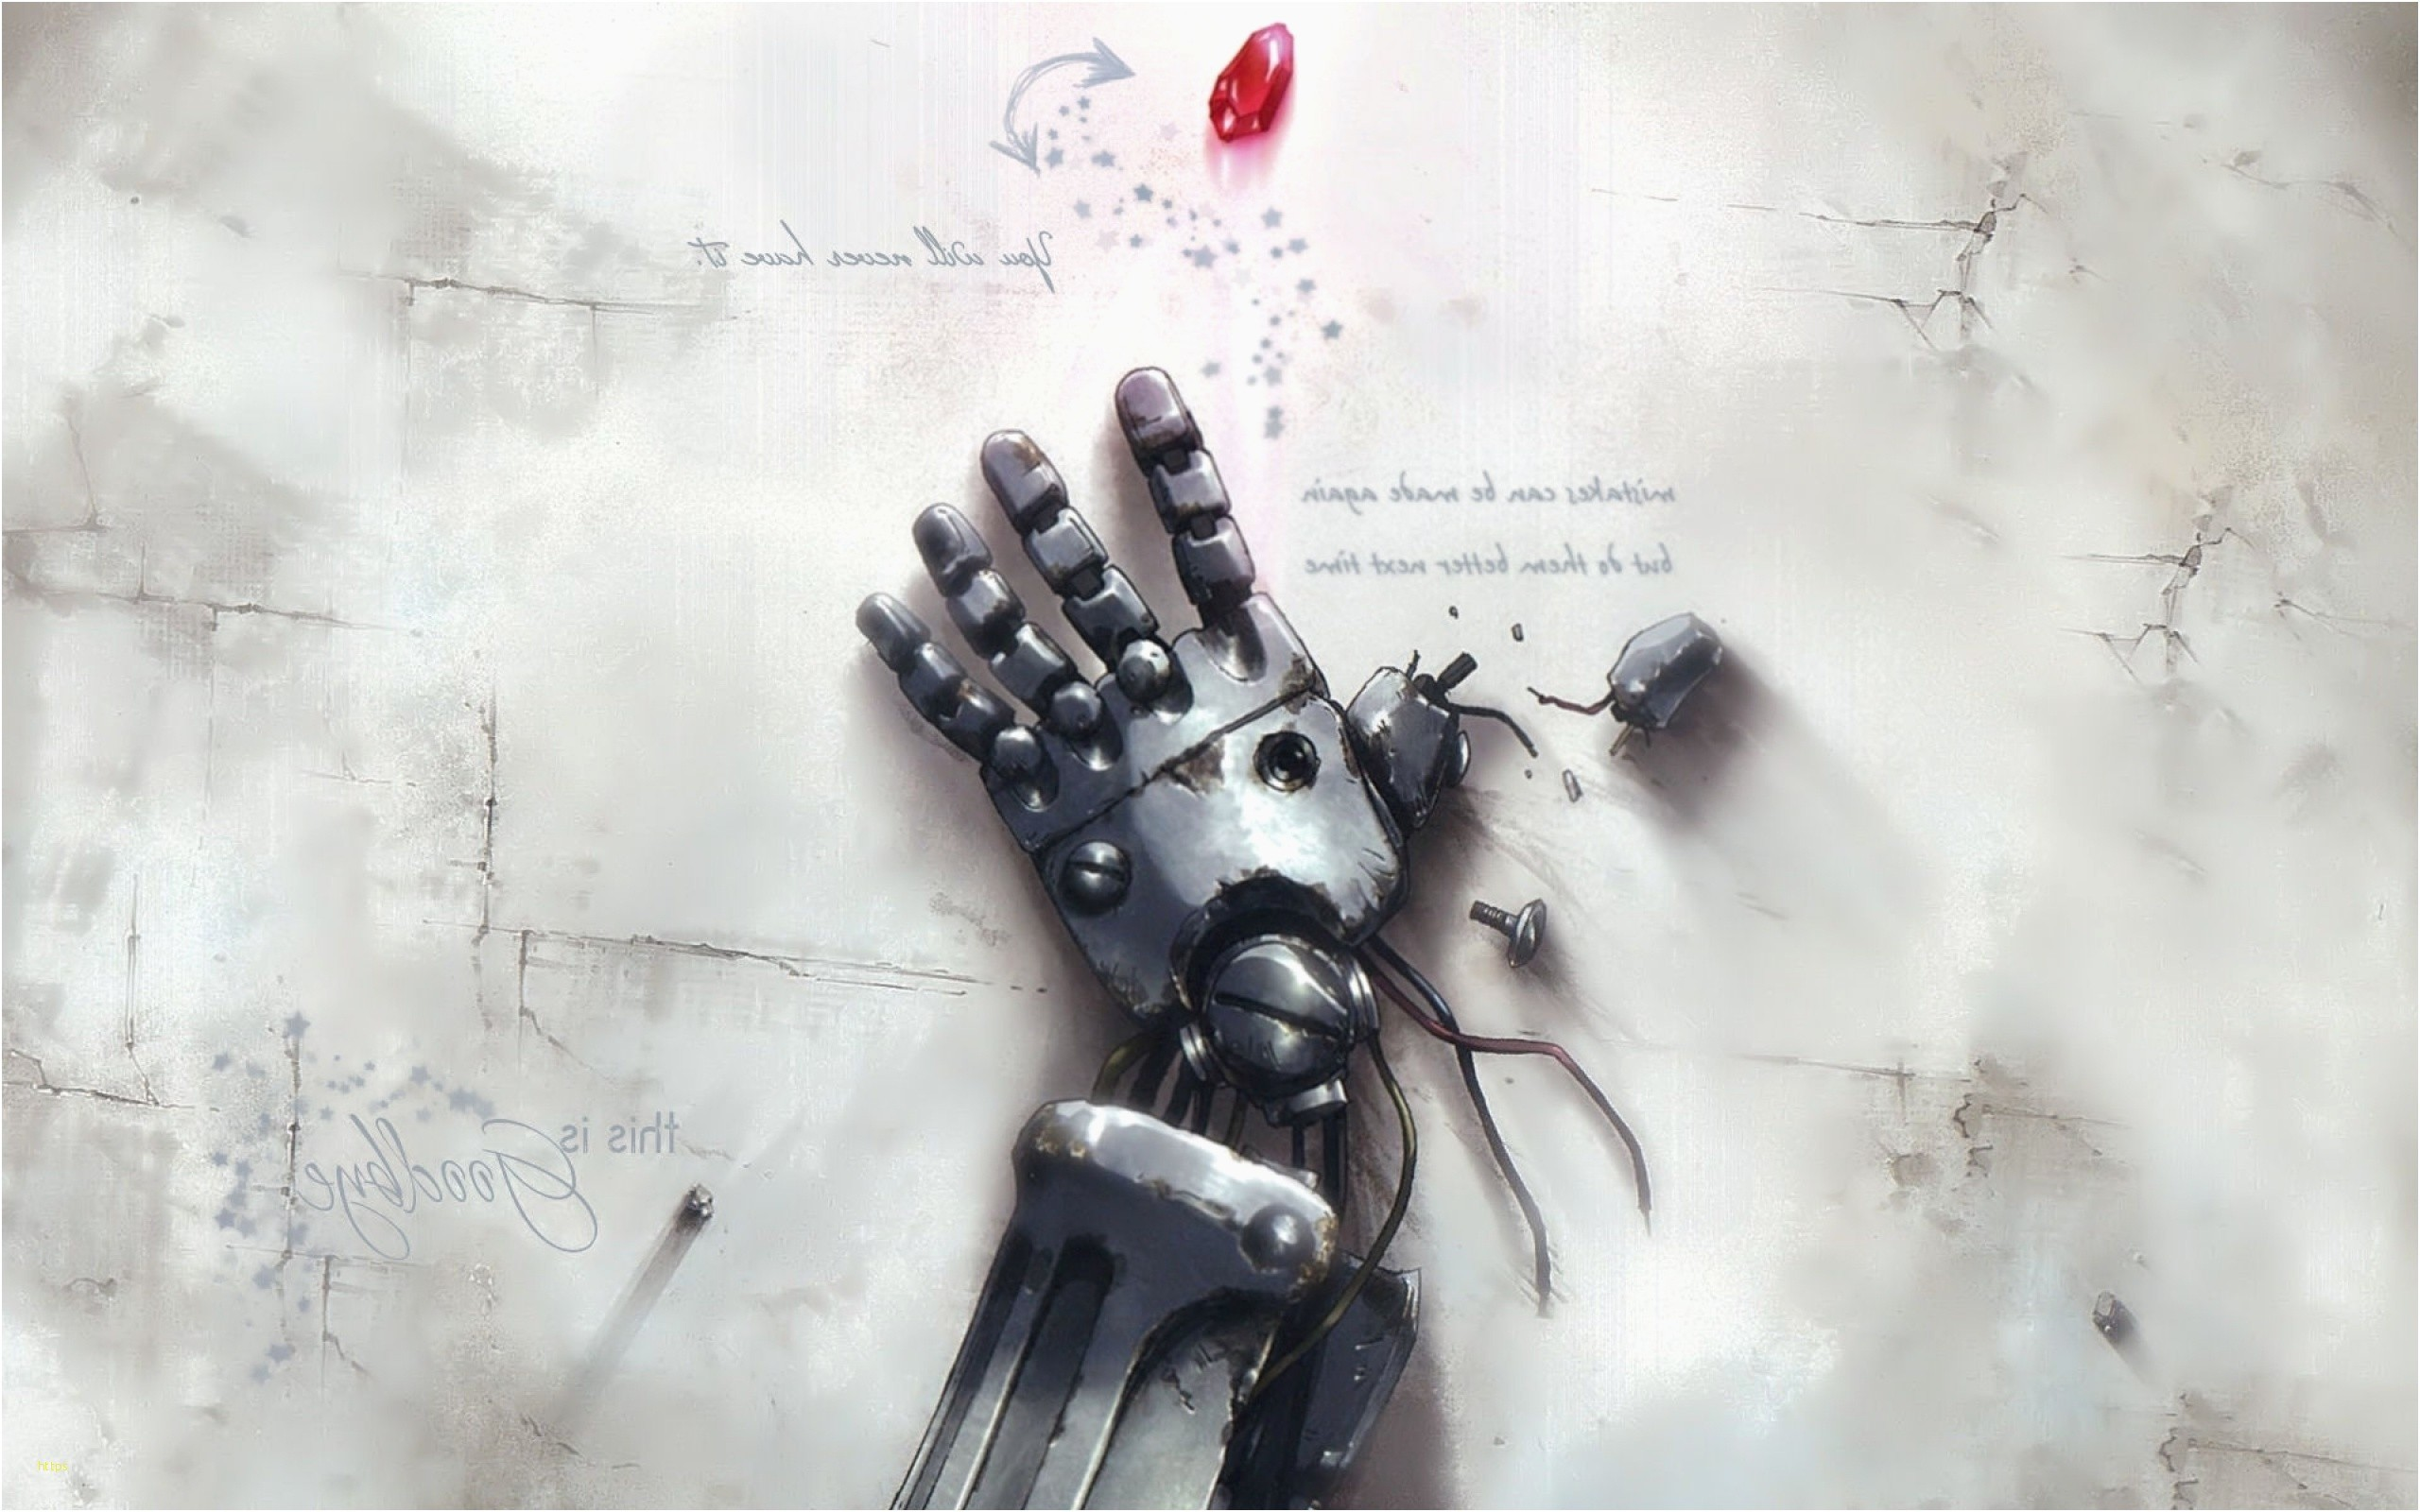 2560x1600 ... Full Metal Alchemist Wallpaper Inspirational Fullmetal Alchemist  Wallpapers 7 2560 X 1600 ...